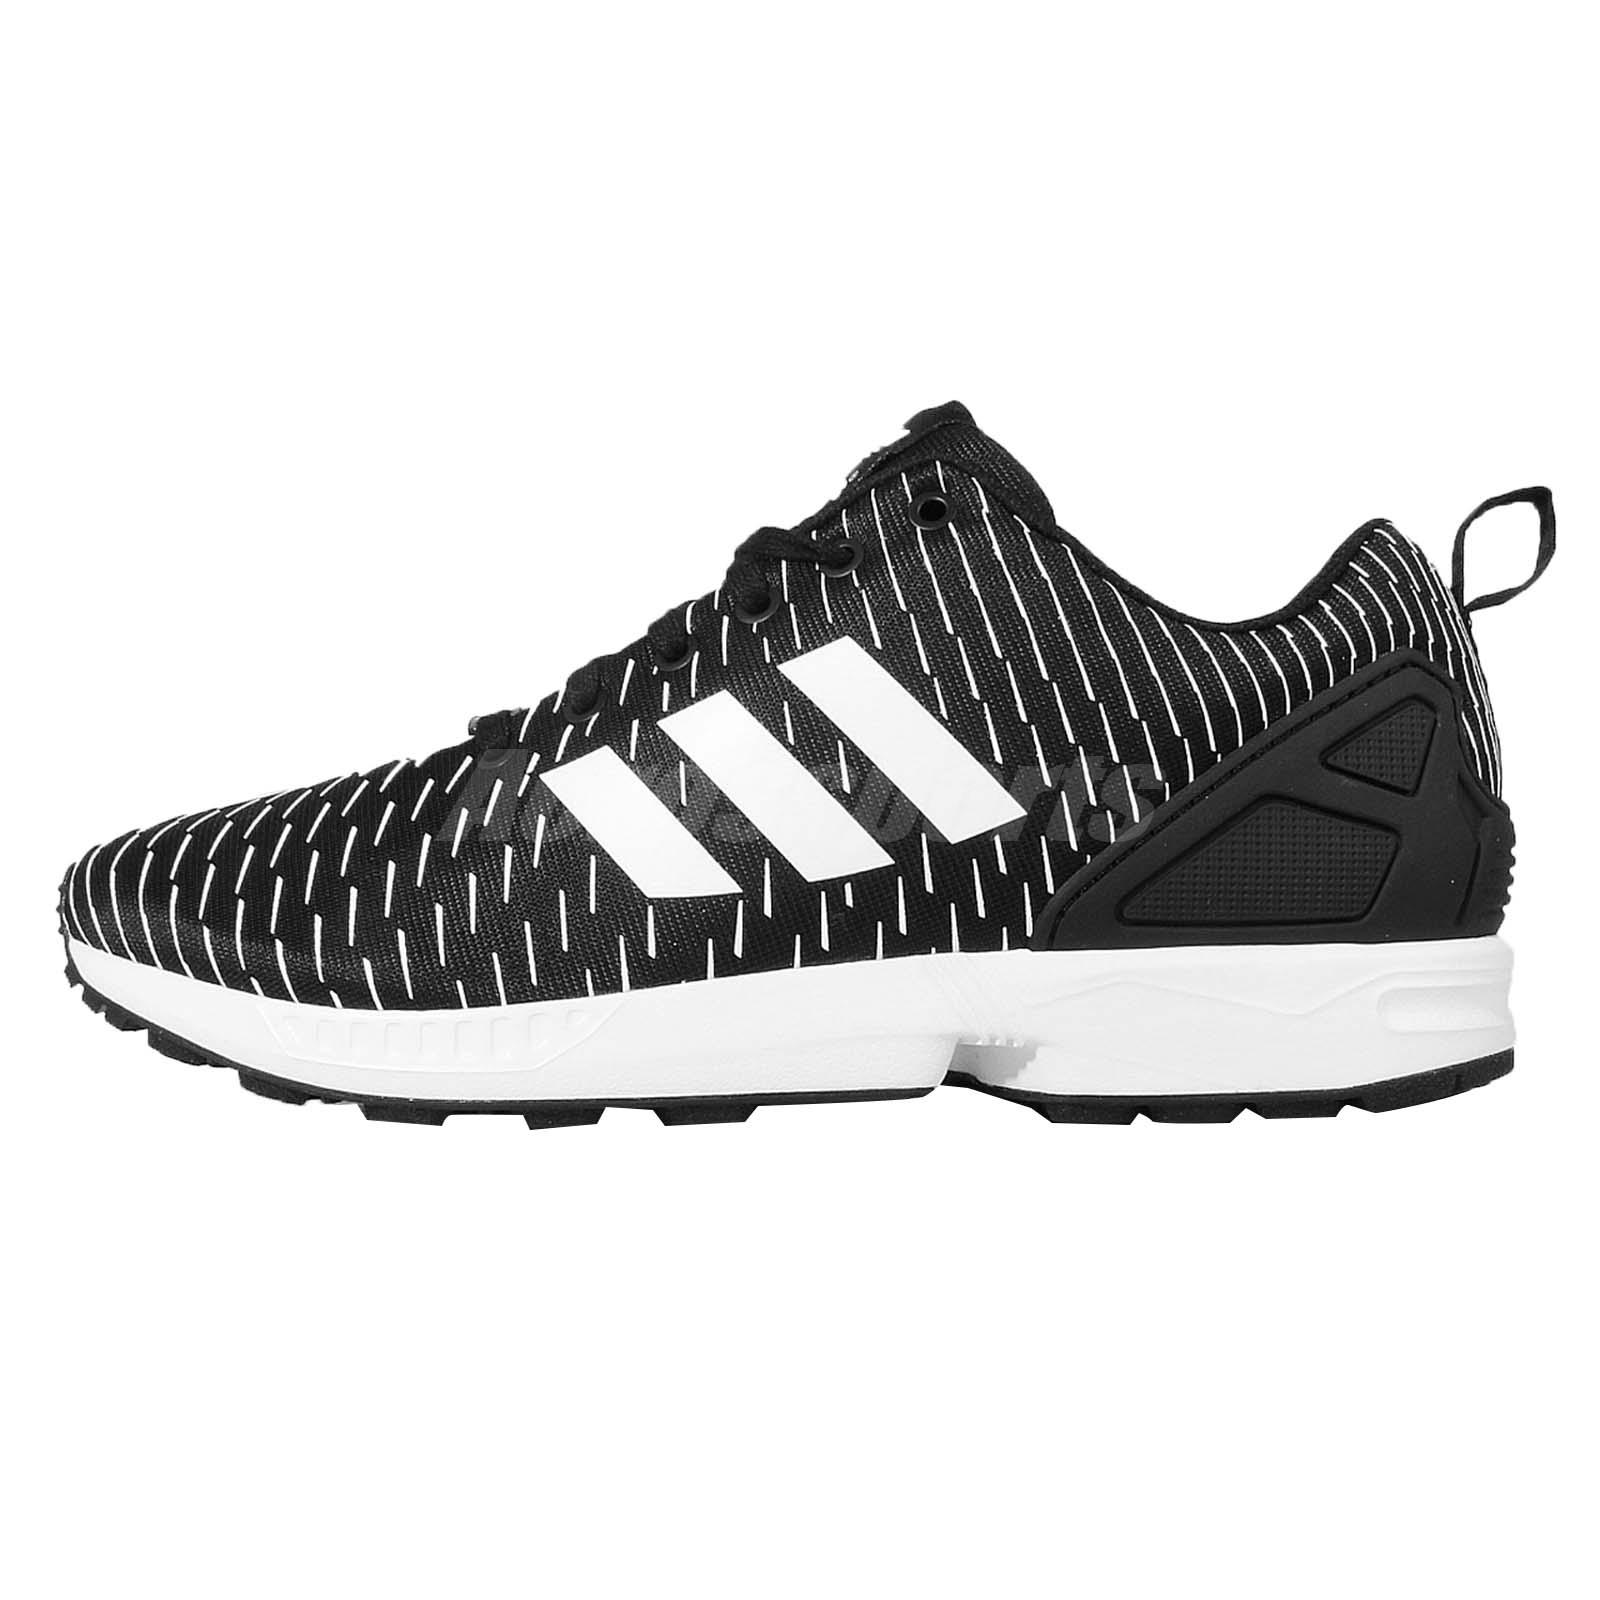 Adidas Zx Flux Black With White Stripes